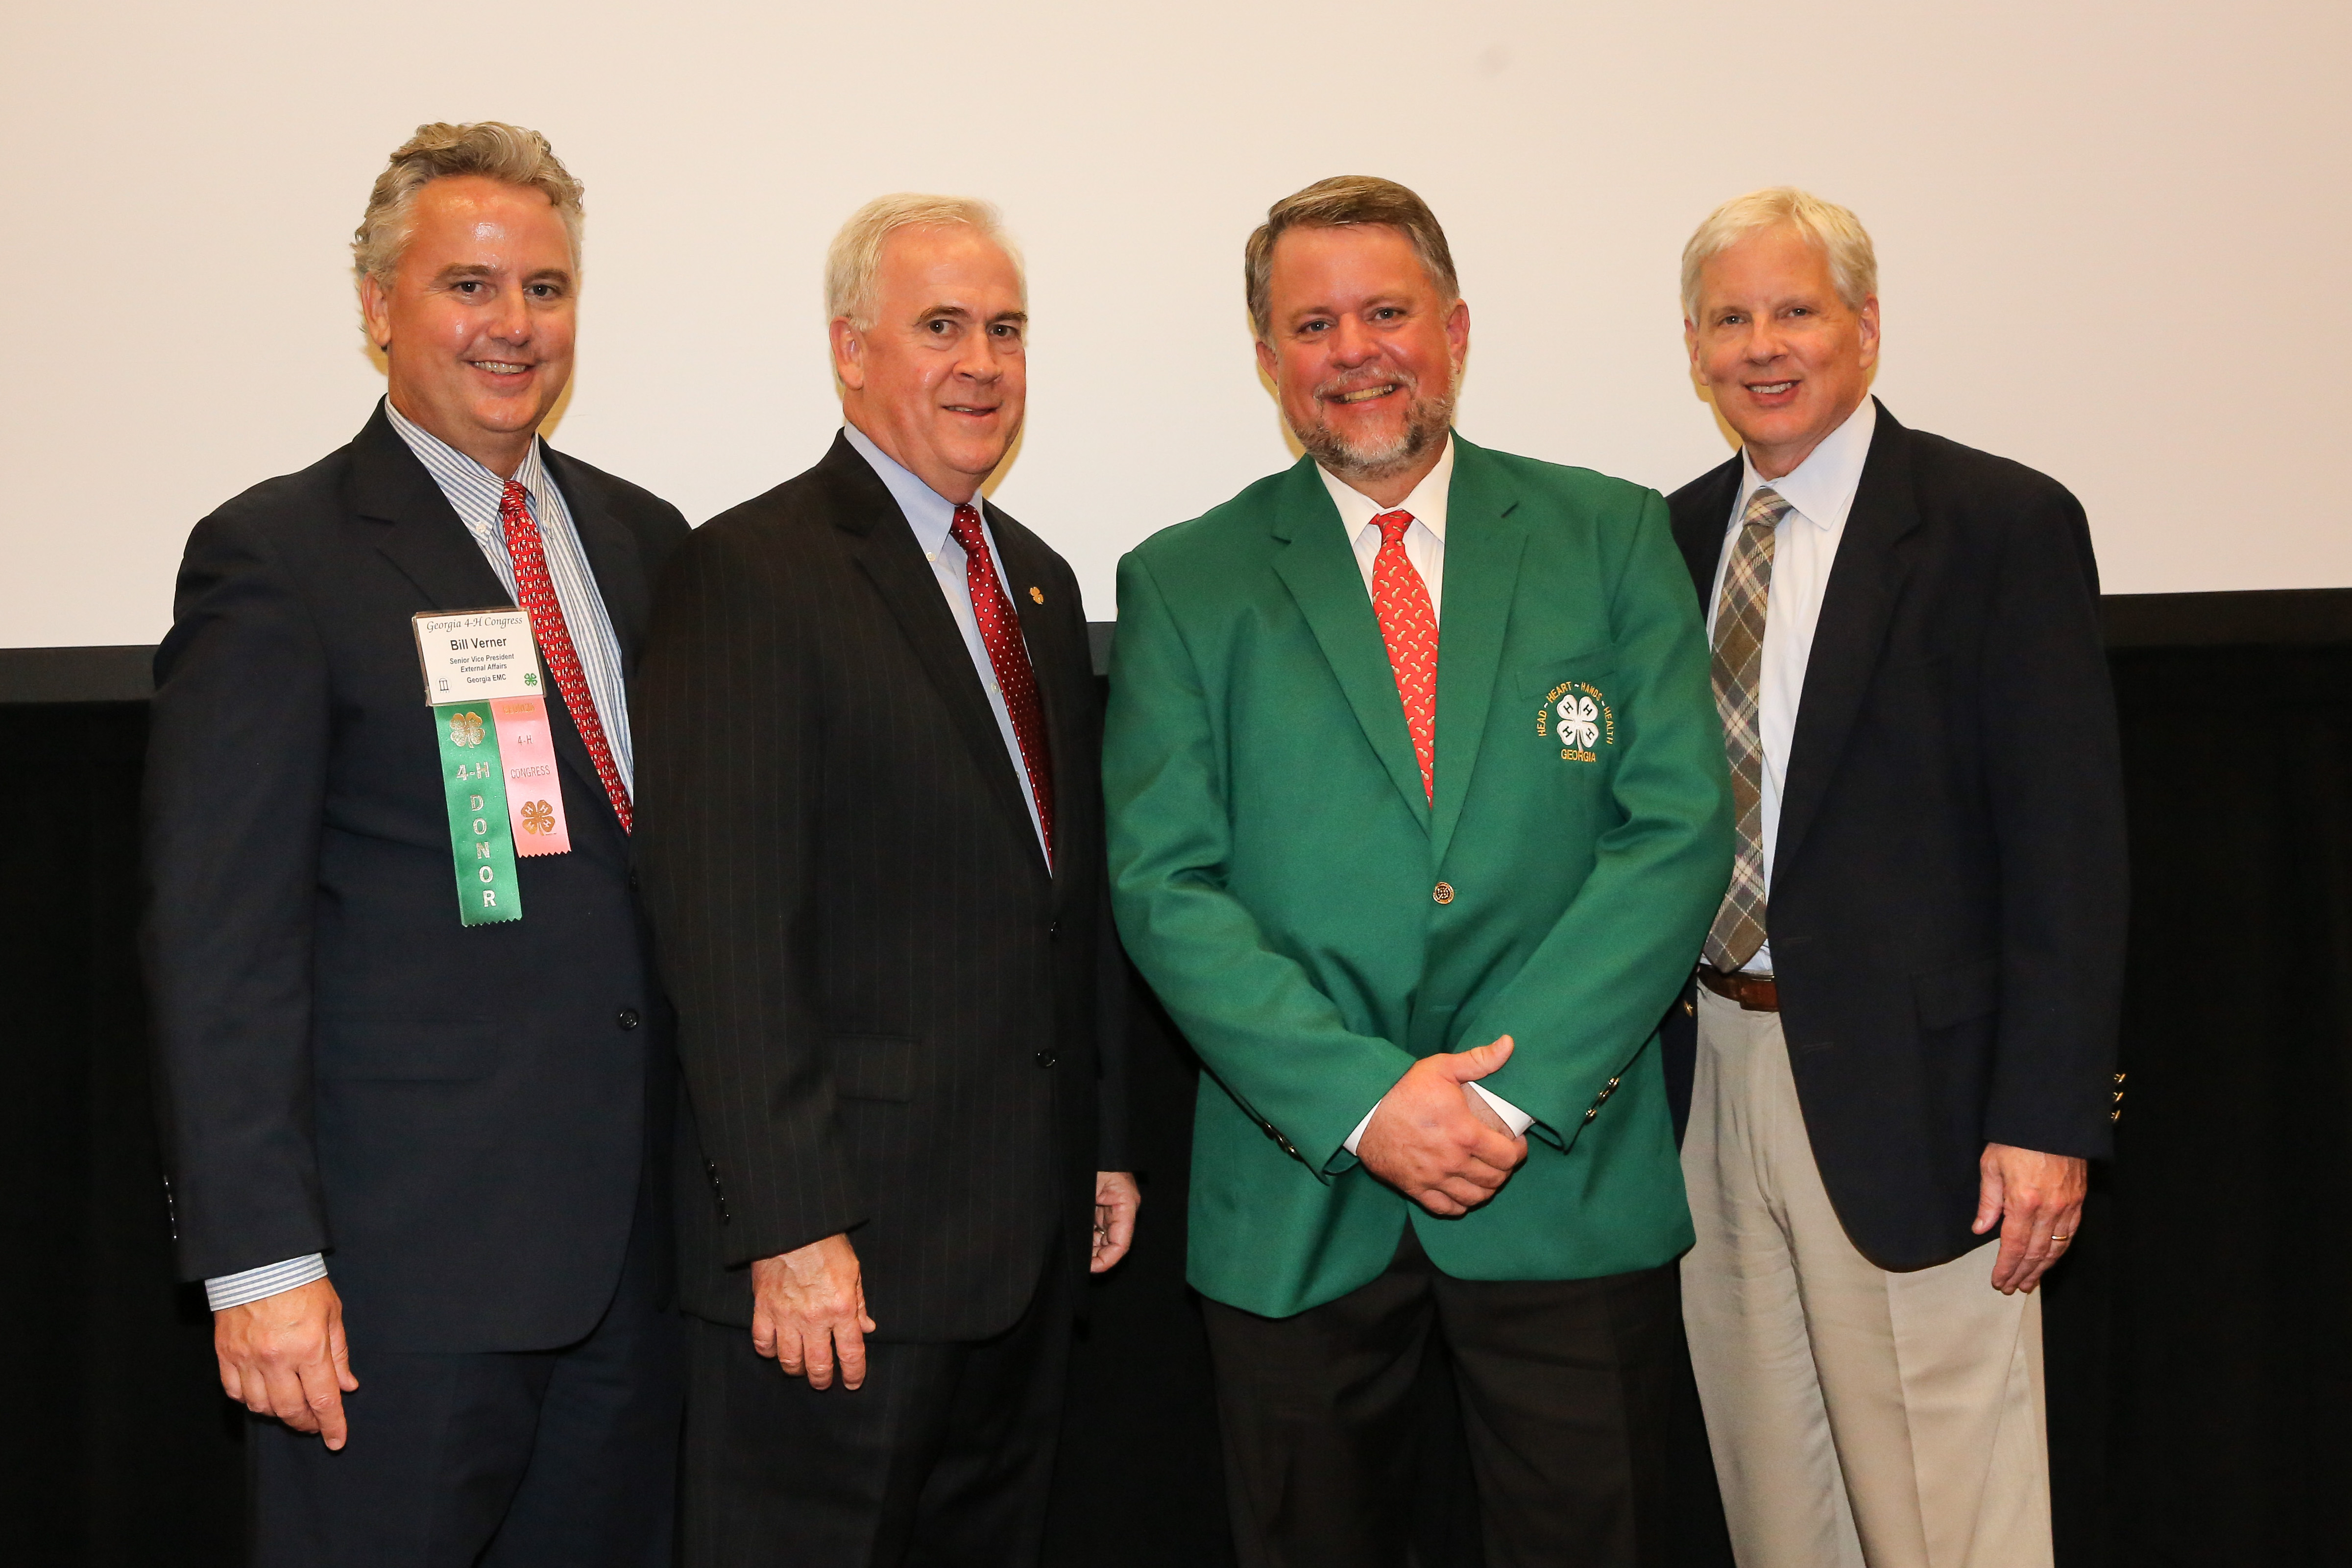 Georgia Representative Terry England is the 2014 winner of the Georgia 4-H Green Jacket Award. Sponsored by Georgia EMC, the green jacket award is presented annually to an individual who has exhibited outstanding support of the Georgia 4-H program. Pictured left to right are Georgia EMC Senior Vice-President of External Affairs Bill Verner, Georgia 4-H State Leader Arch Smith, Representative Terry England and University of Georgia College of Agricultural and Environmental Sciences Dean and Director Scott Angle.